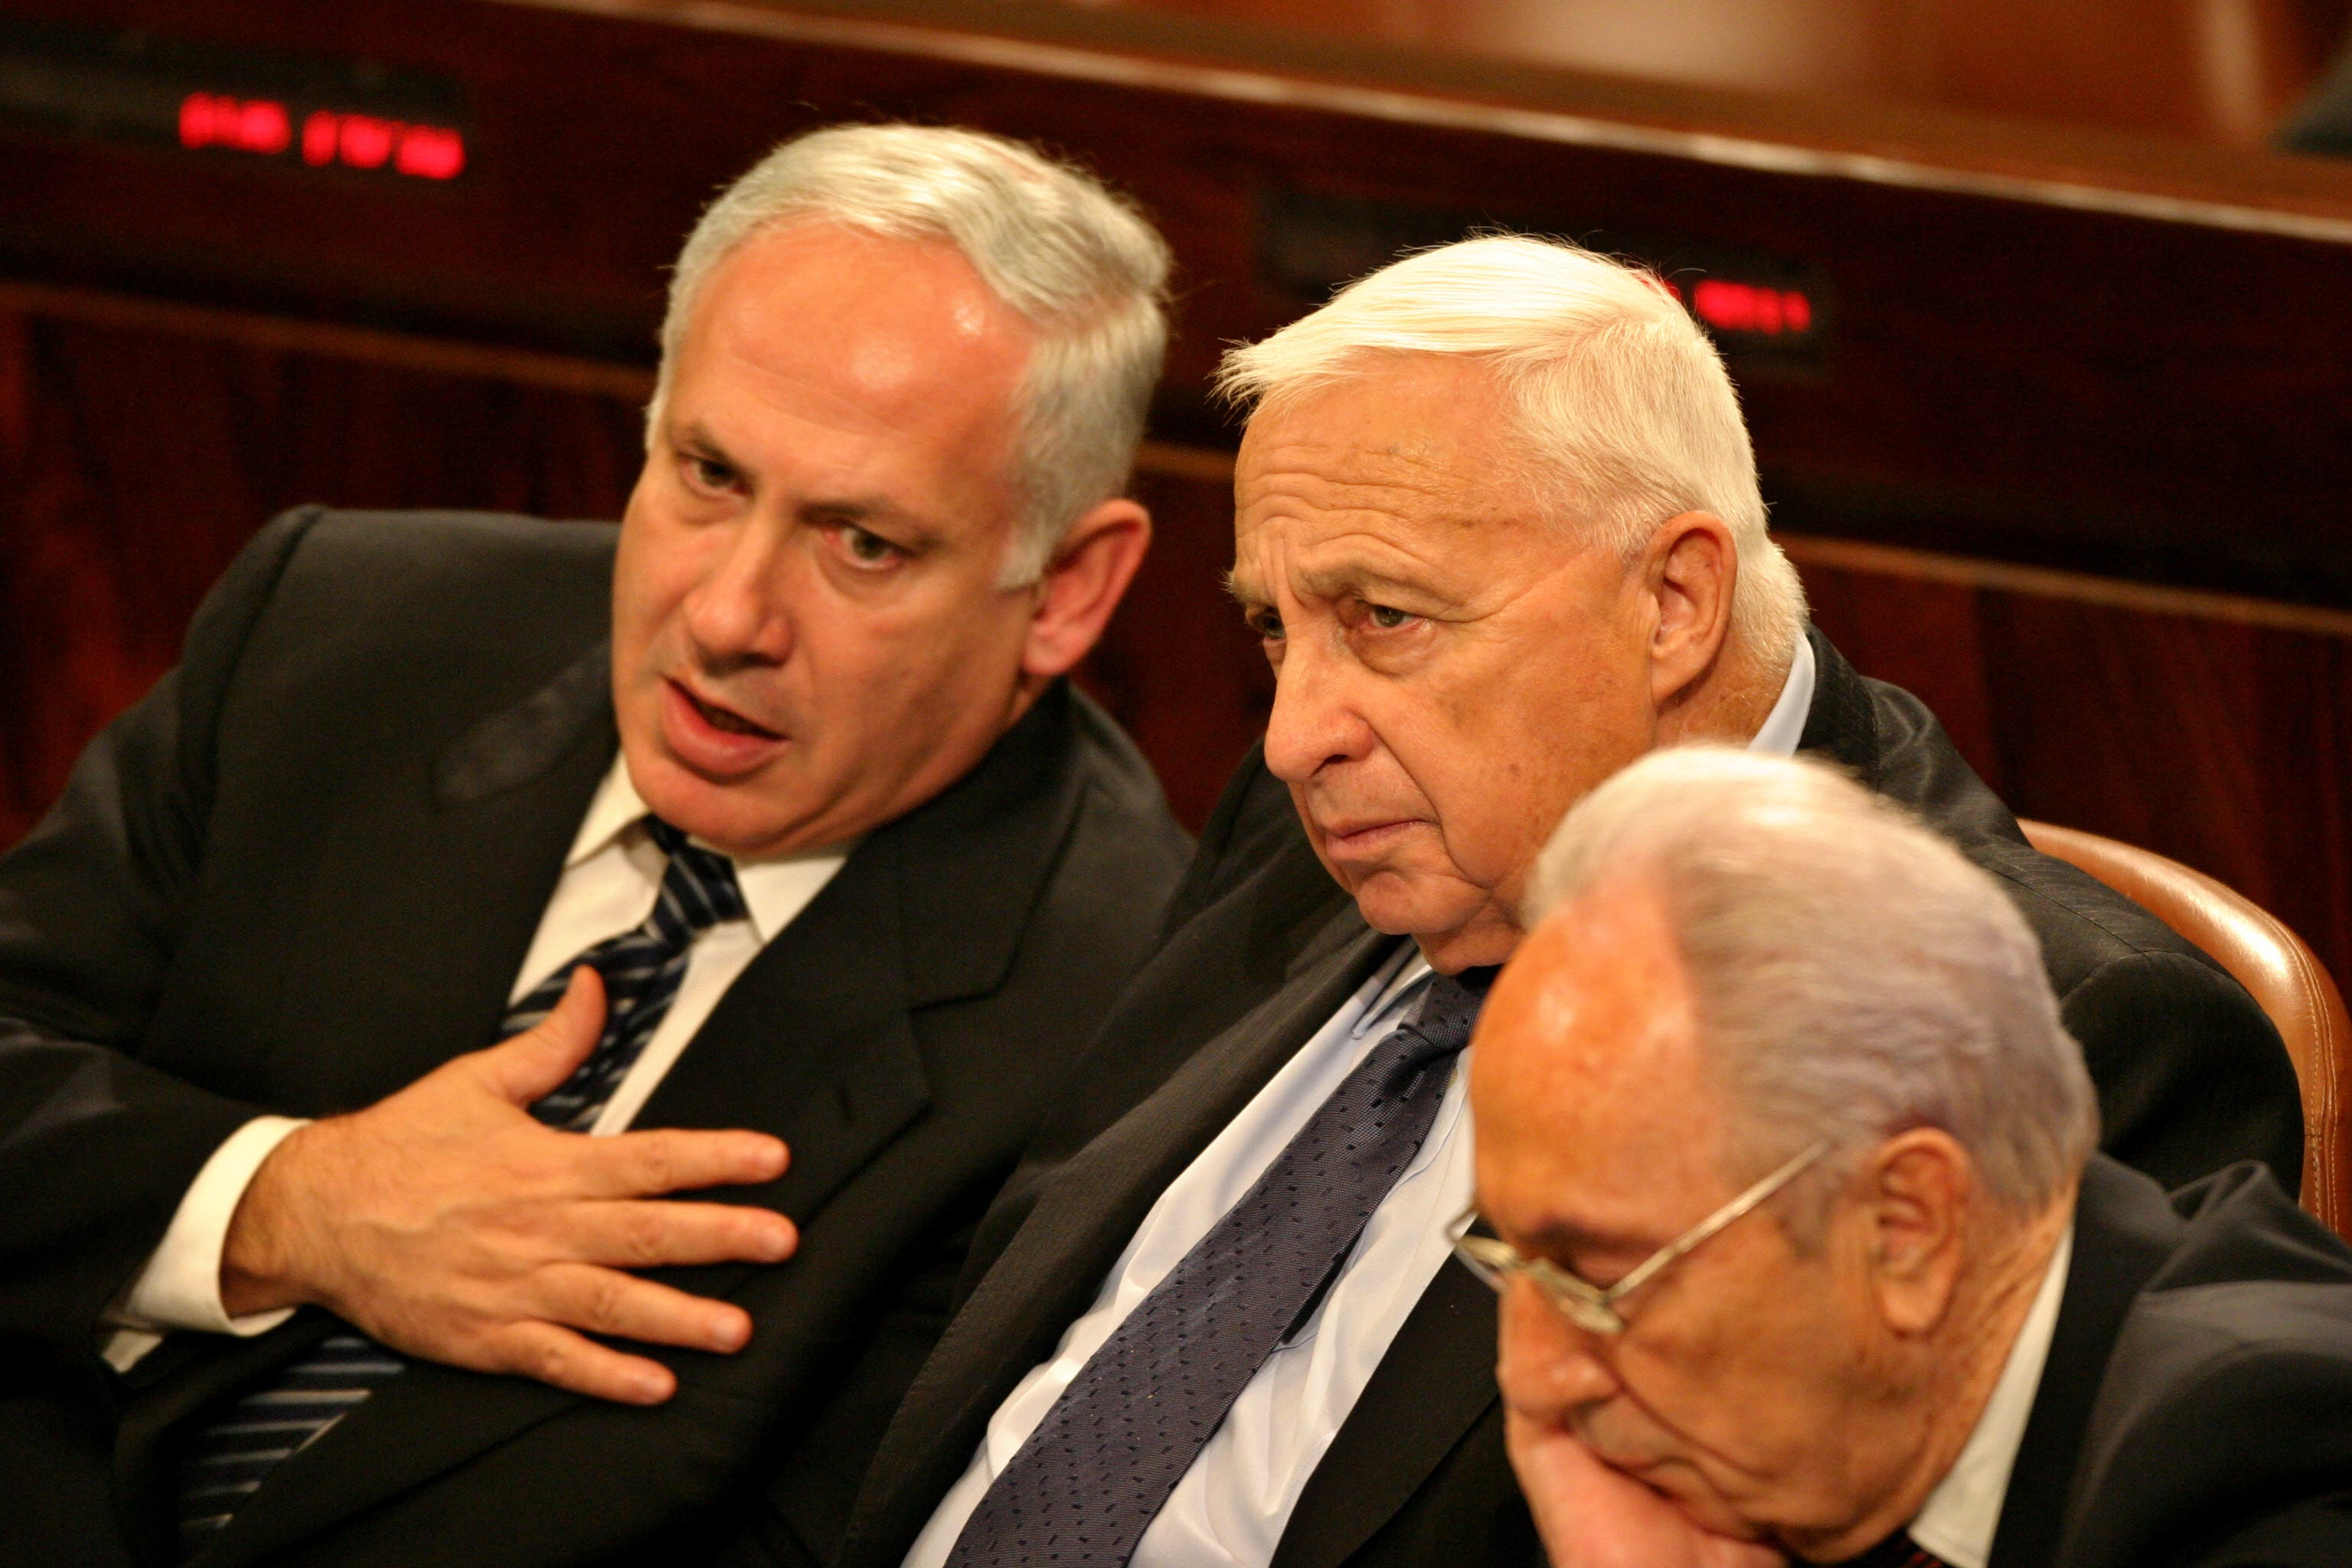 Israeli financial Minister Netanyahu, Prime Minister Sharon and Vice Premier Peres attend a session at the Israeli Parliament in Jerusalem. (L-R) Israeli financial Minister and former Prime Minister Benjamin Netanyahu, Israeli Prime Minister Ariel Sharon and his Vice Premier Shimon Peres attend a session at the Israeli Parliament in Jerusalem, February 14, 2005